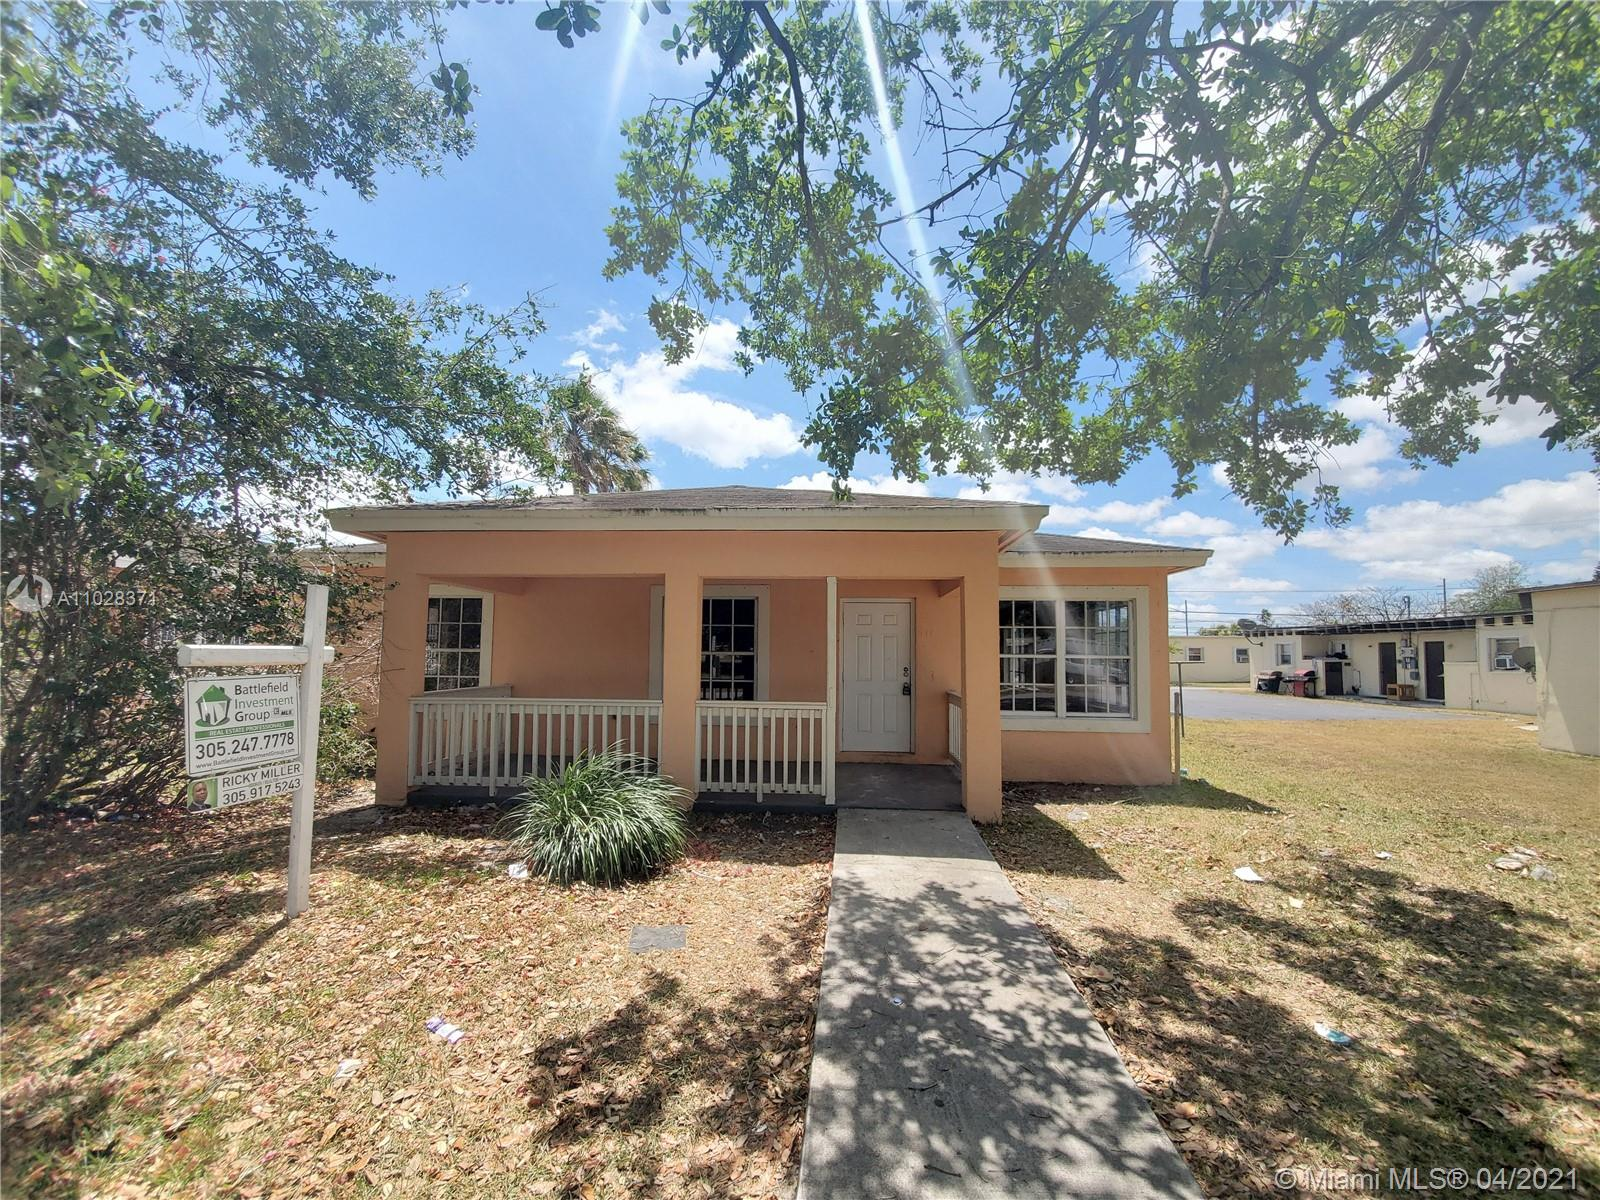 712 SW 6 ST Property Photo - Homestead, FL real estate listing